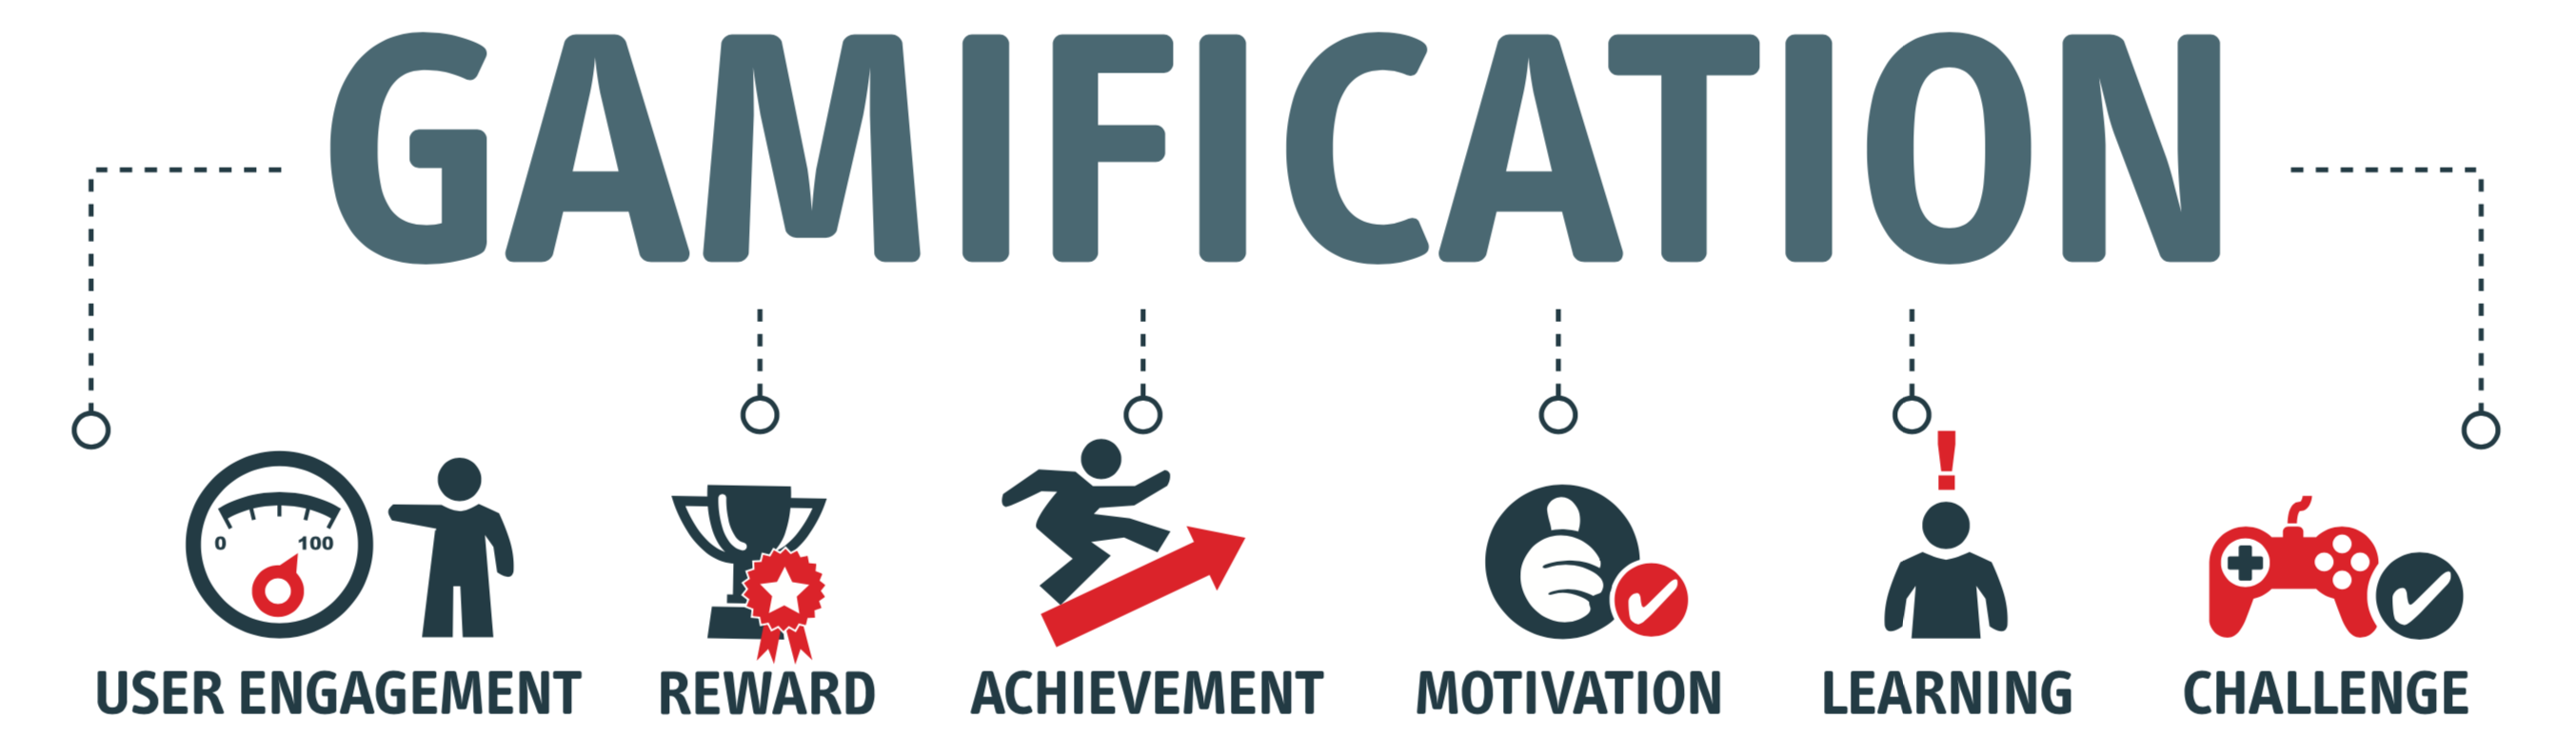 Gamification - Benefits and Outcomes